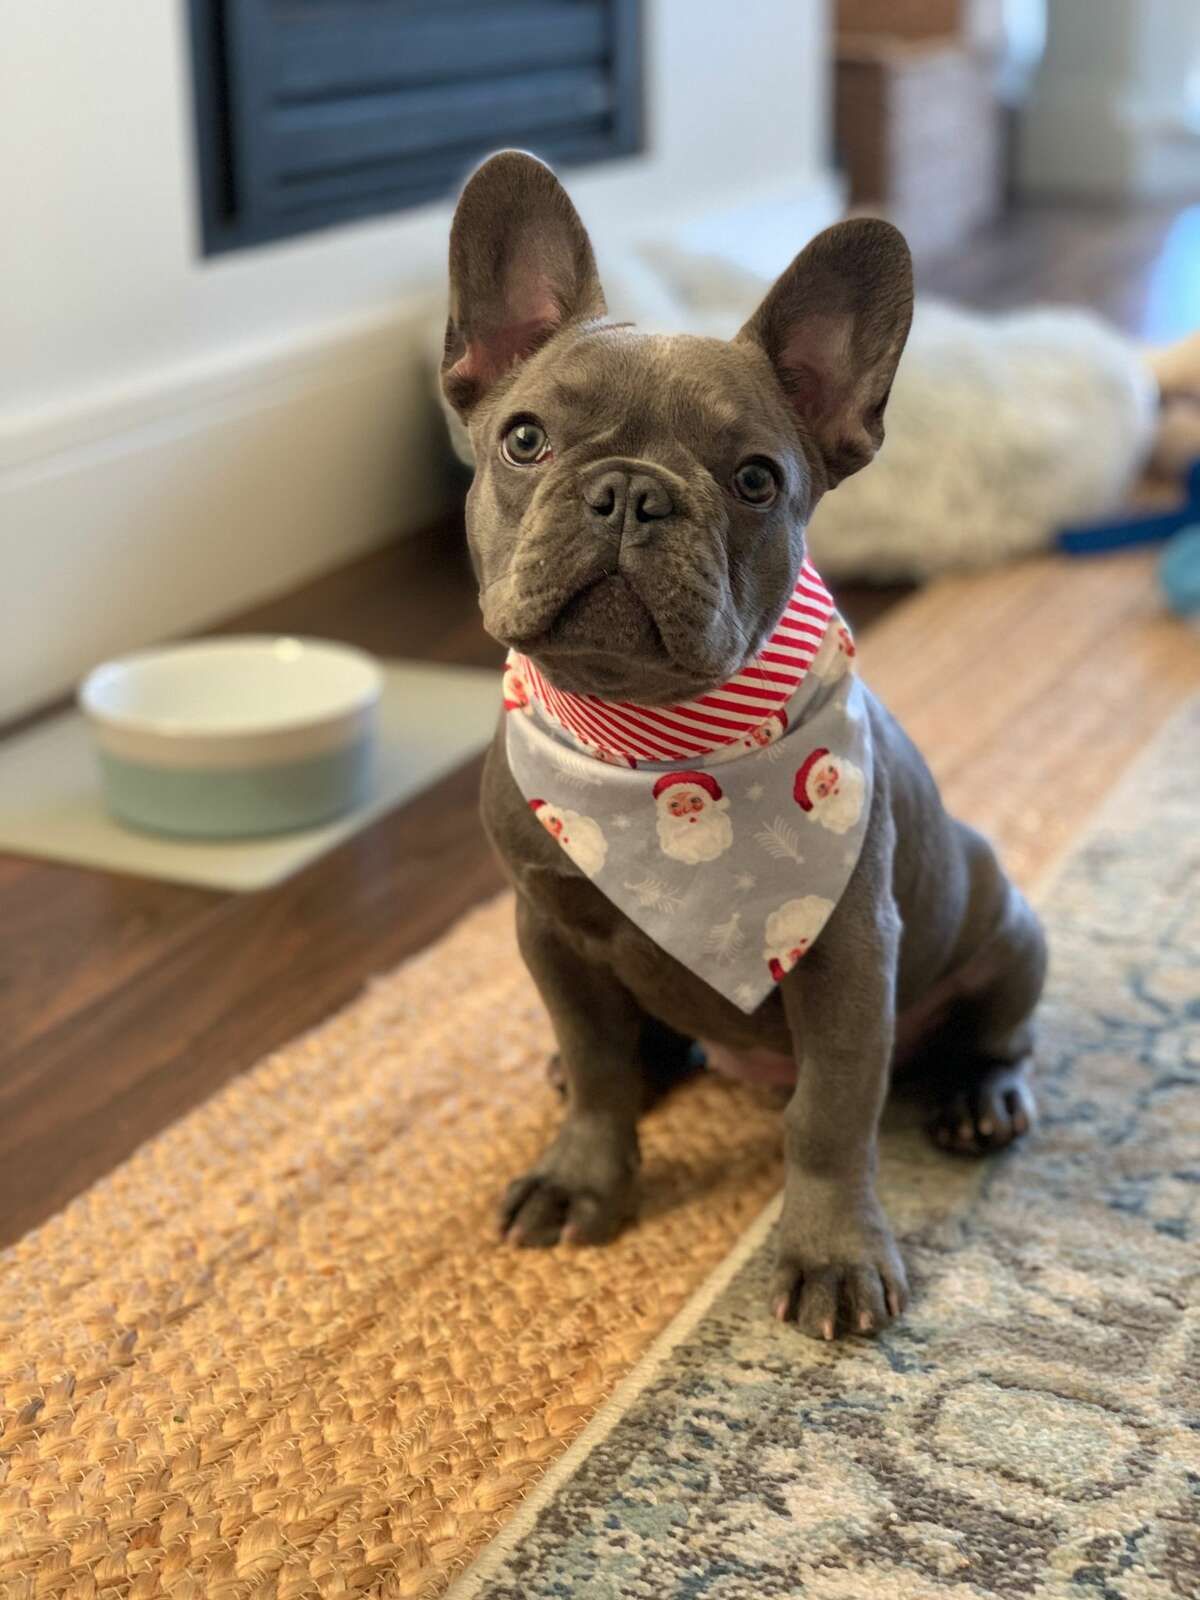 San Francisco resident Sarah Vorhaus' 5-month-old French bulldog, Chloe was stolen when she was assaulted at gunpoint in Russian Hill on Jan. 5, 2021, police say.